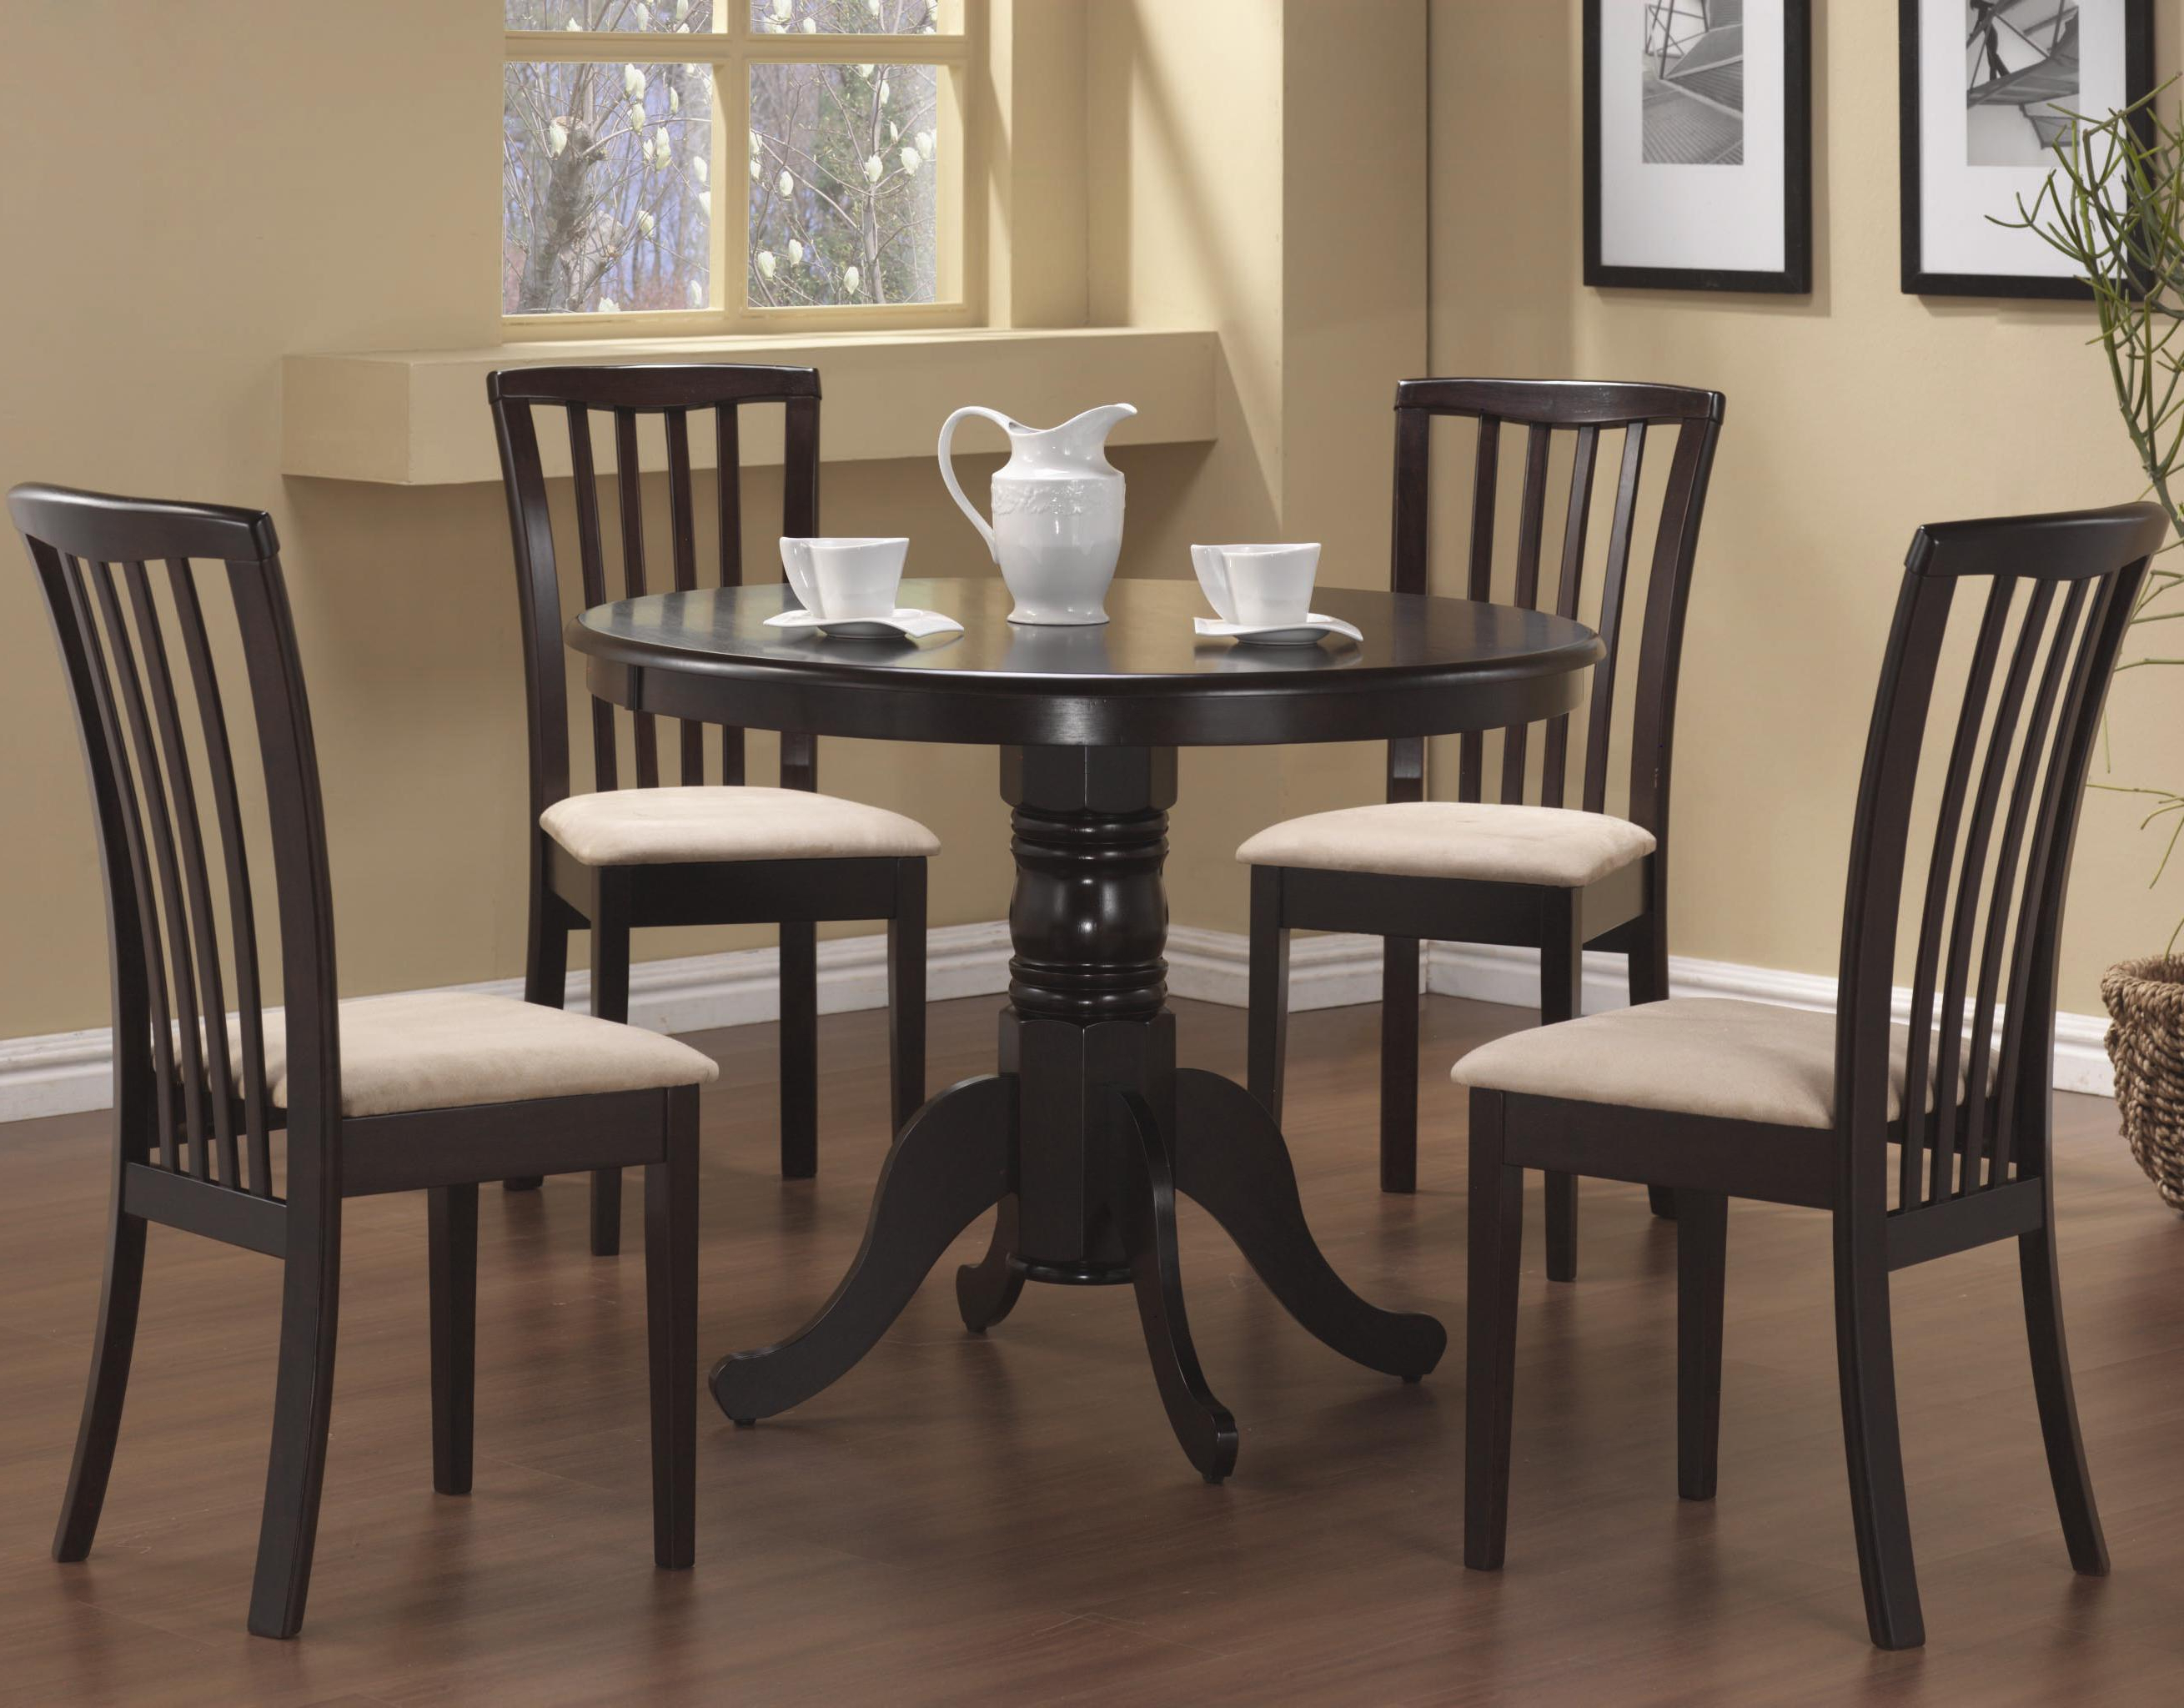 Preferred Santa Clara Furniture Store, San Jose Furniture Store, Sunnyvale For Anette 3 Piece Counter Height Dining Sets (View 18 of 25)